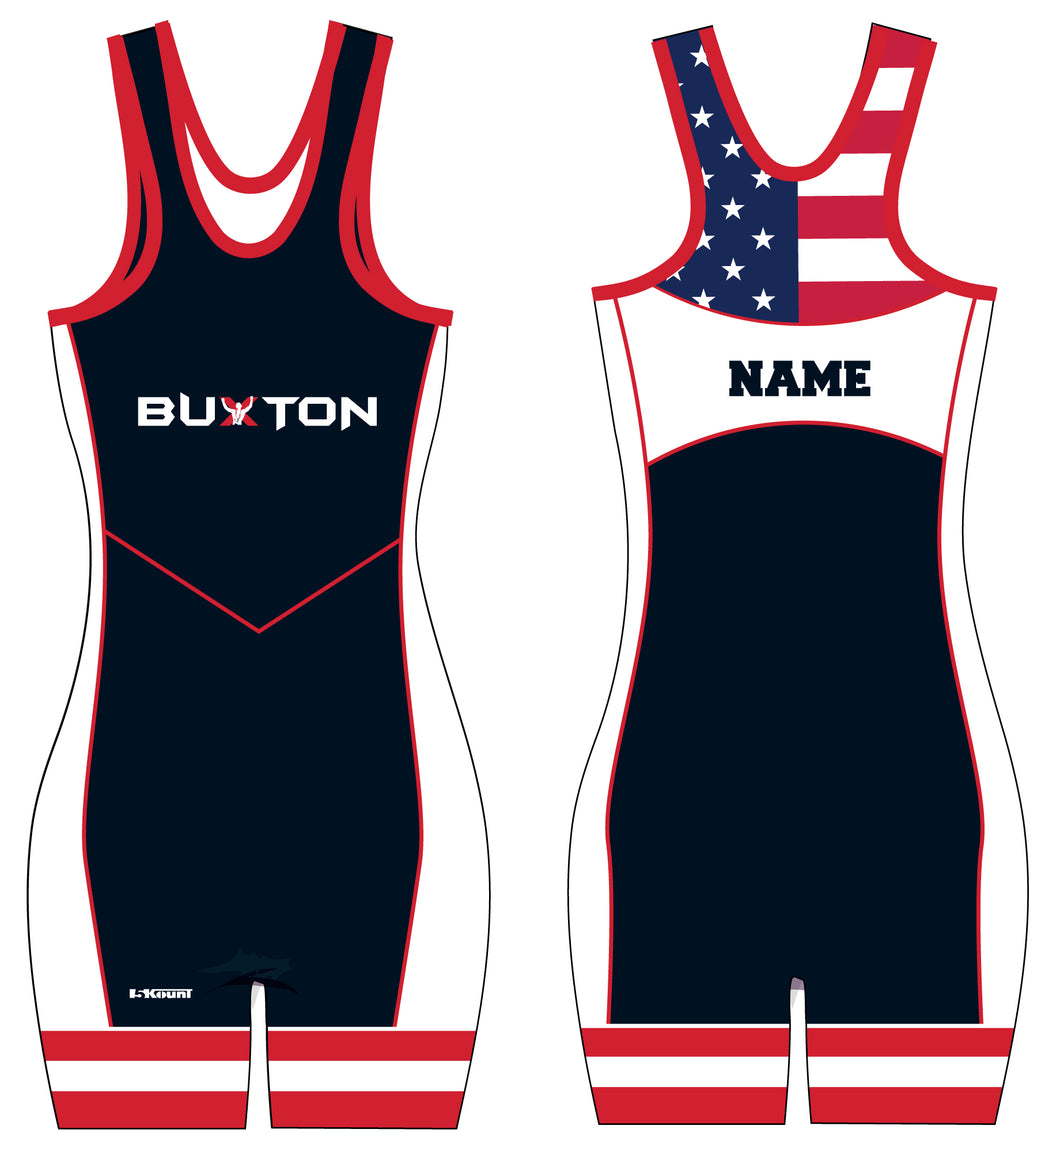 Buxton Sublimated Ladies' Singlet - Navy - 5KounT2018